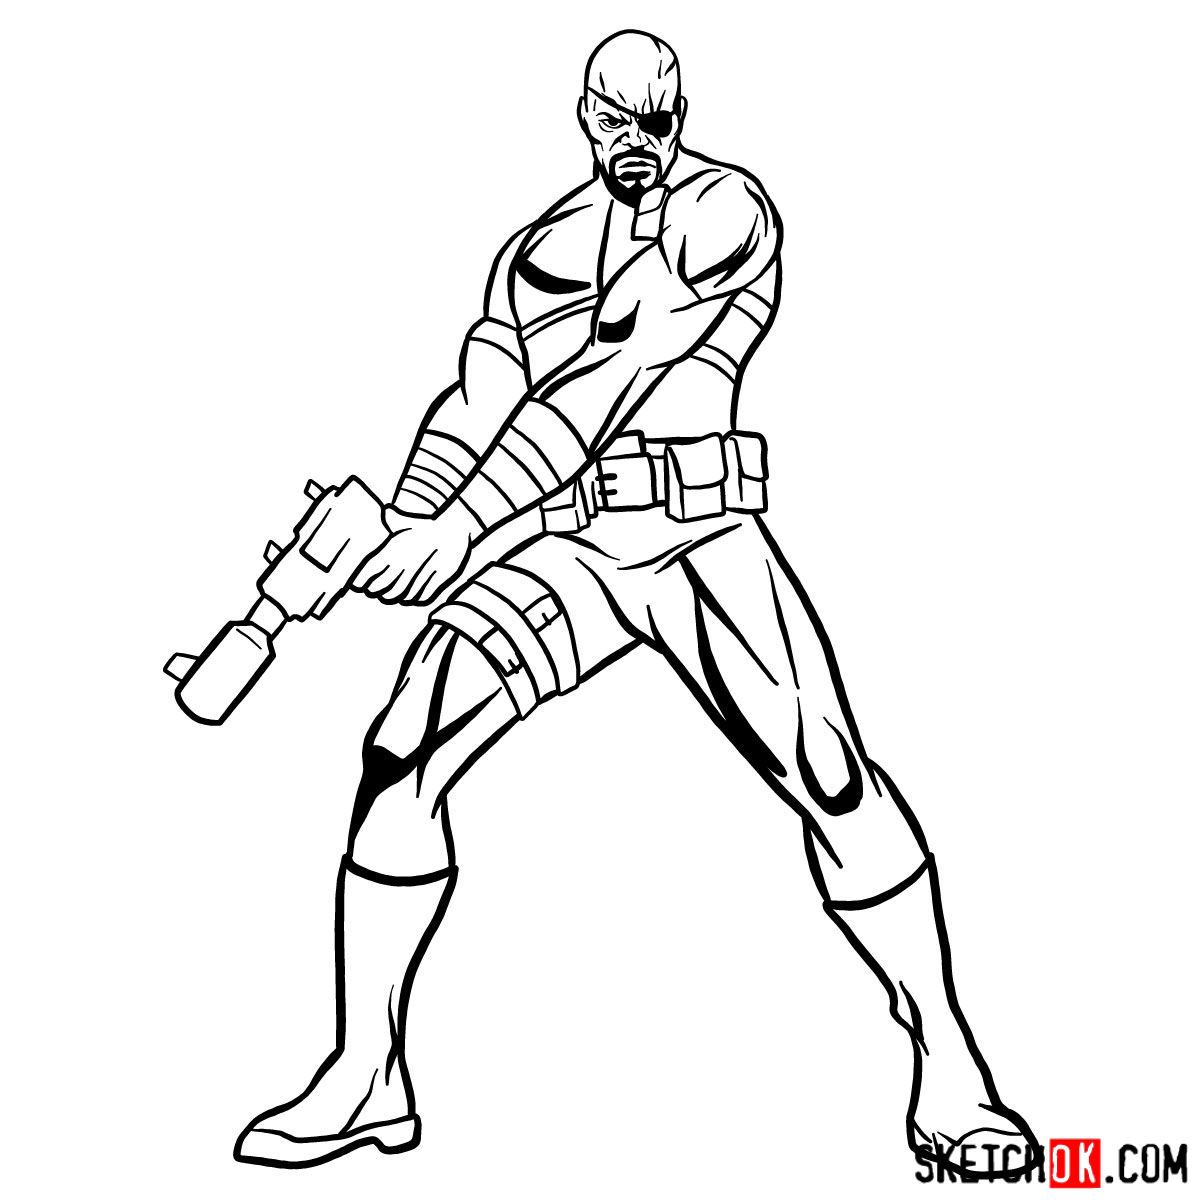 How to draw Nick Fury from the Avengers - step 14